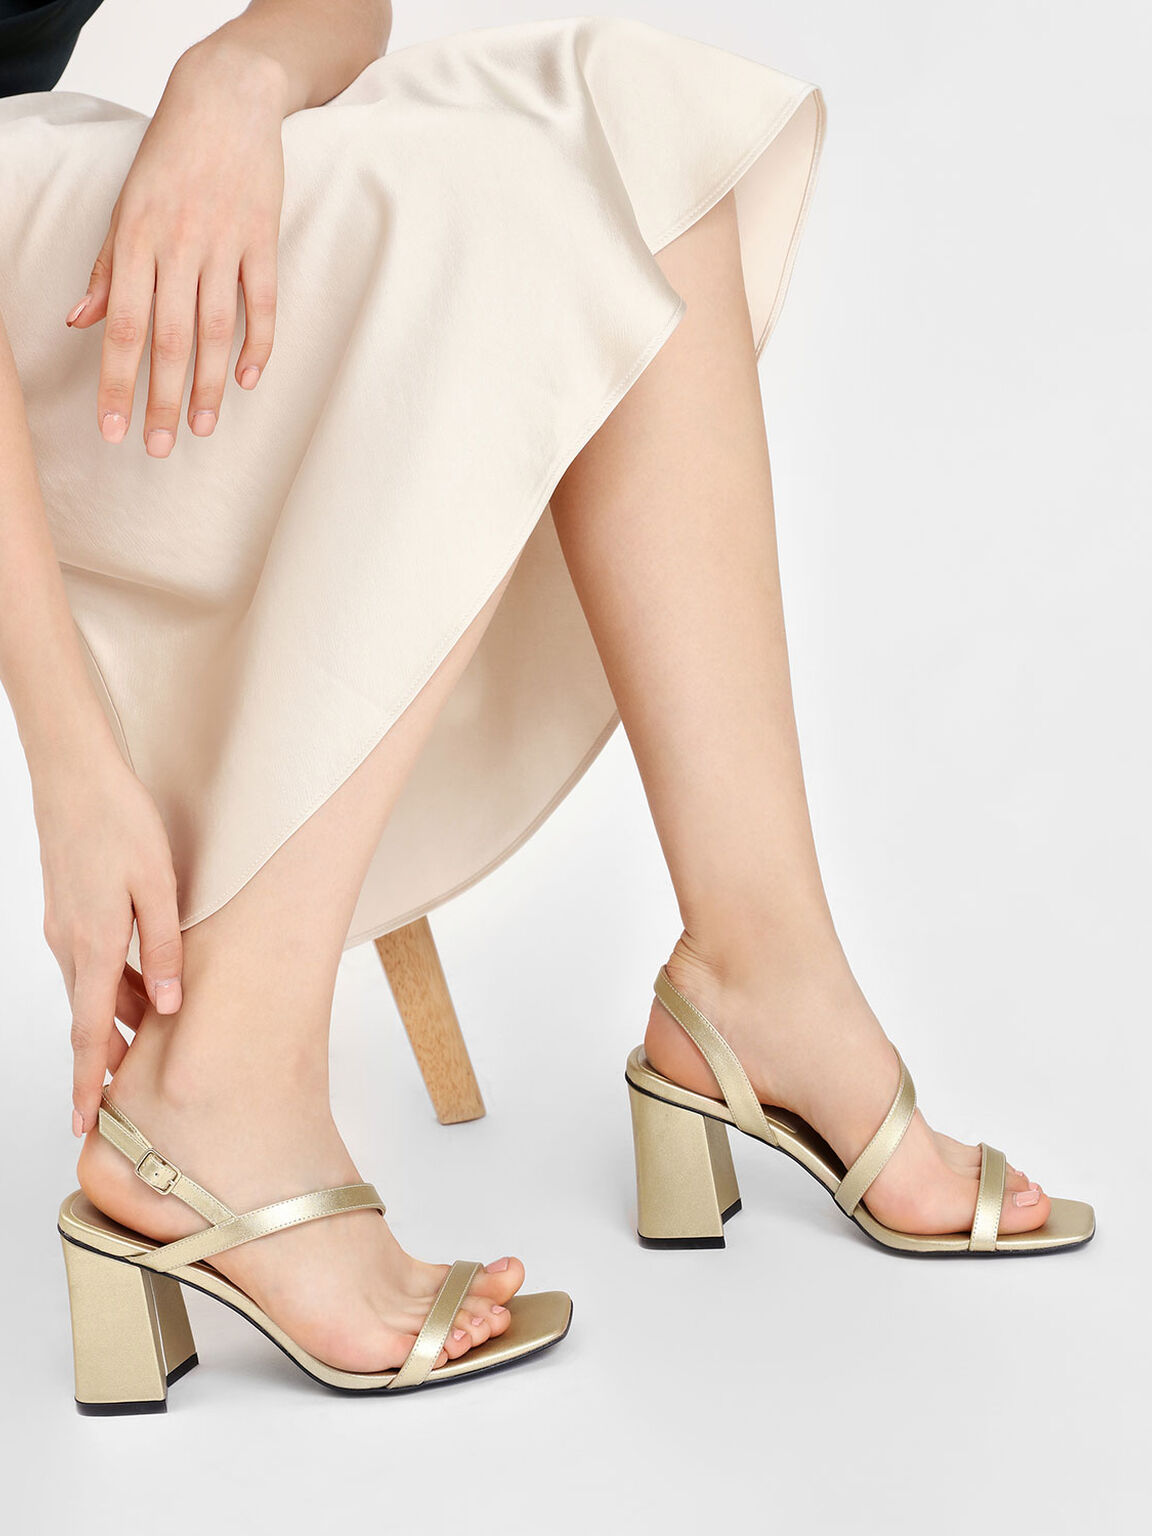 Asymmetrical Strap Heeled Sandals, Gold, hi-res